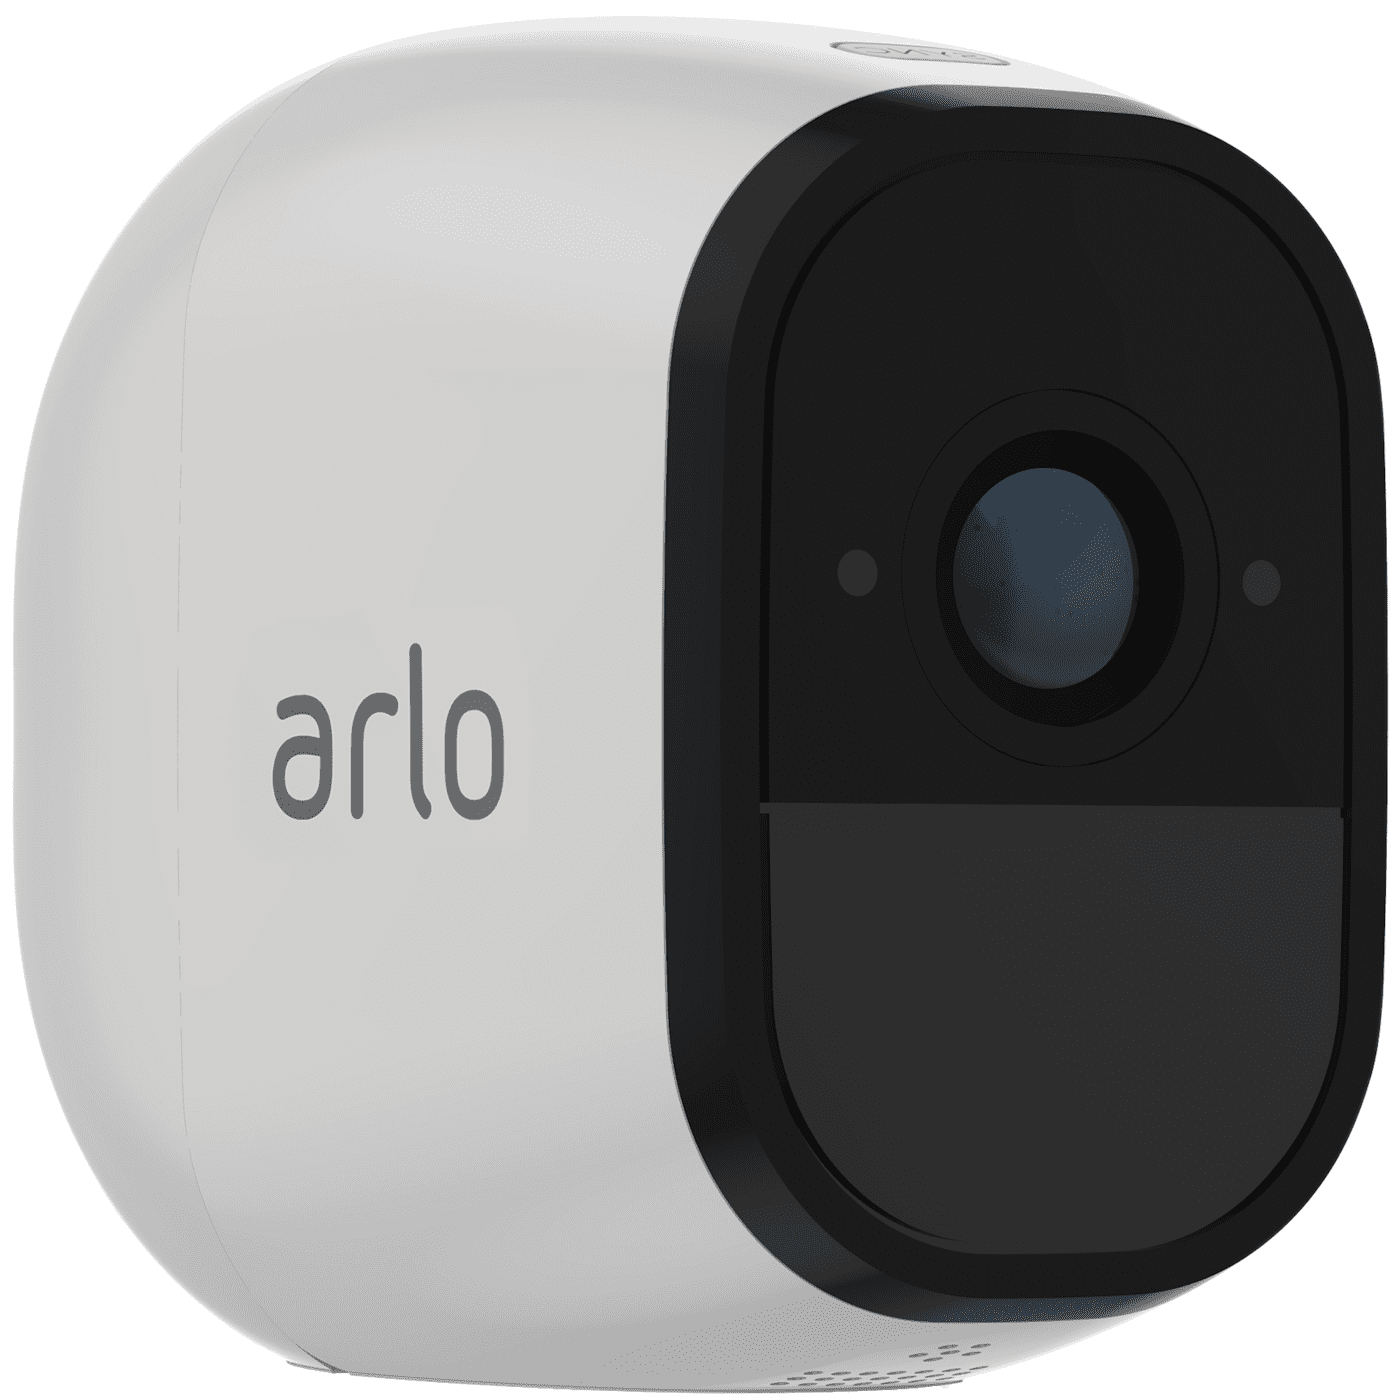 VMC4030-1T9NAS - Arlo Pro Wire-Free 720p HD Security Camera